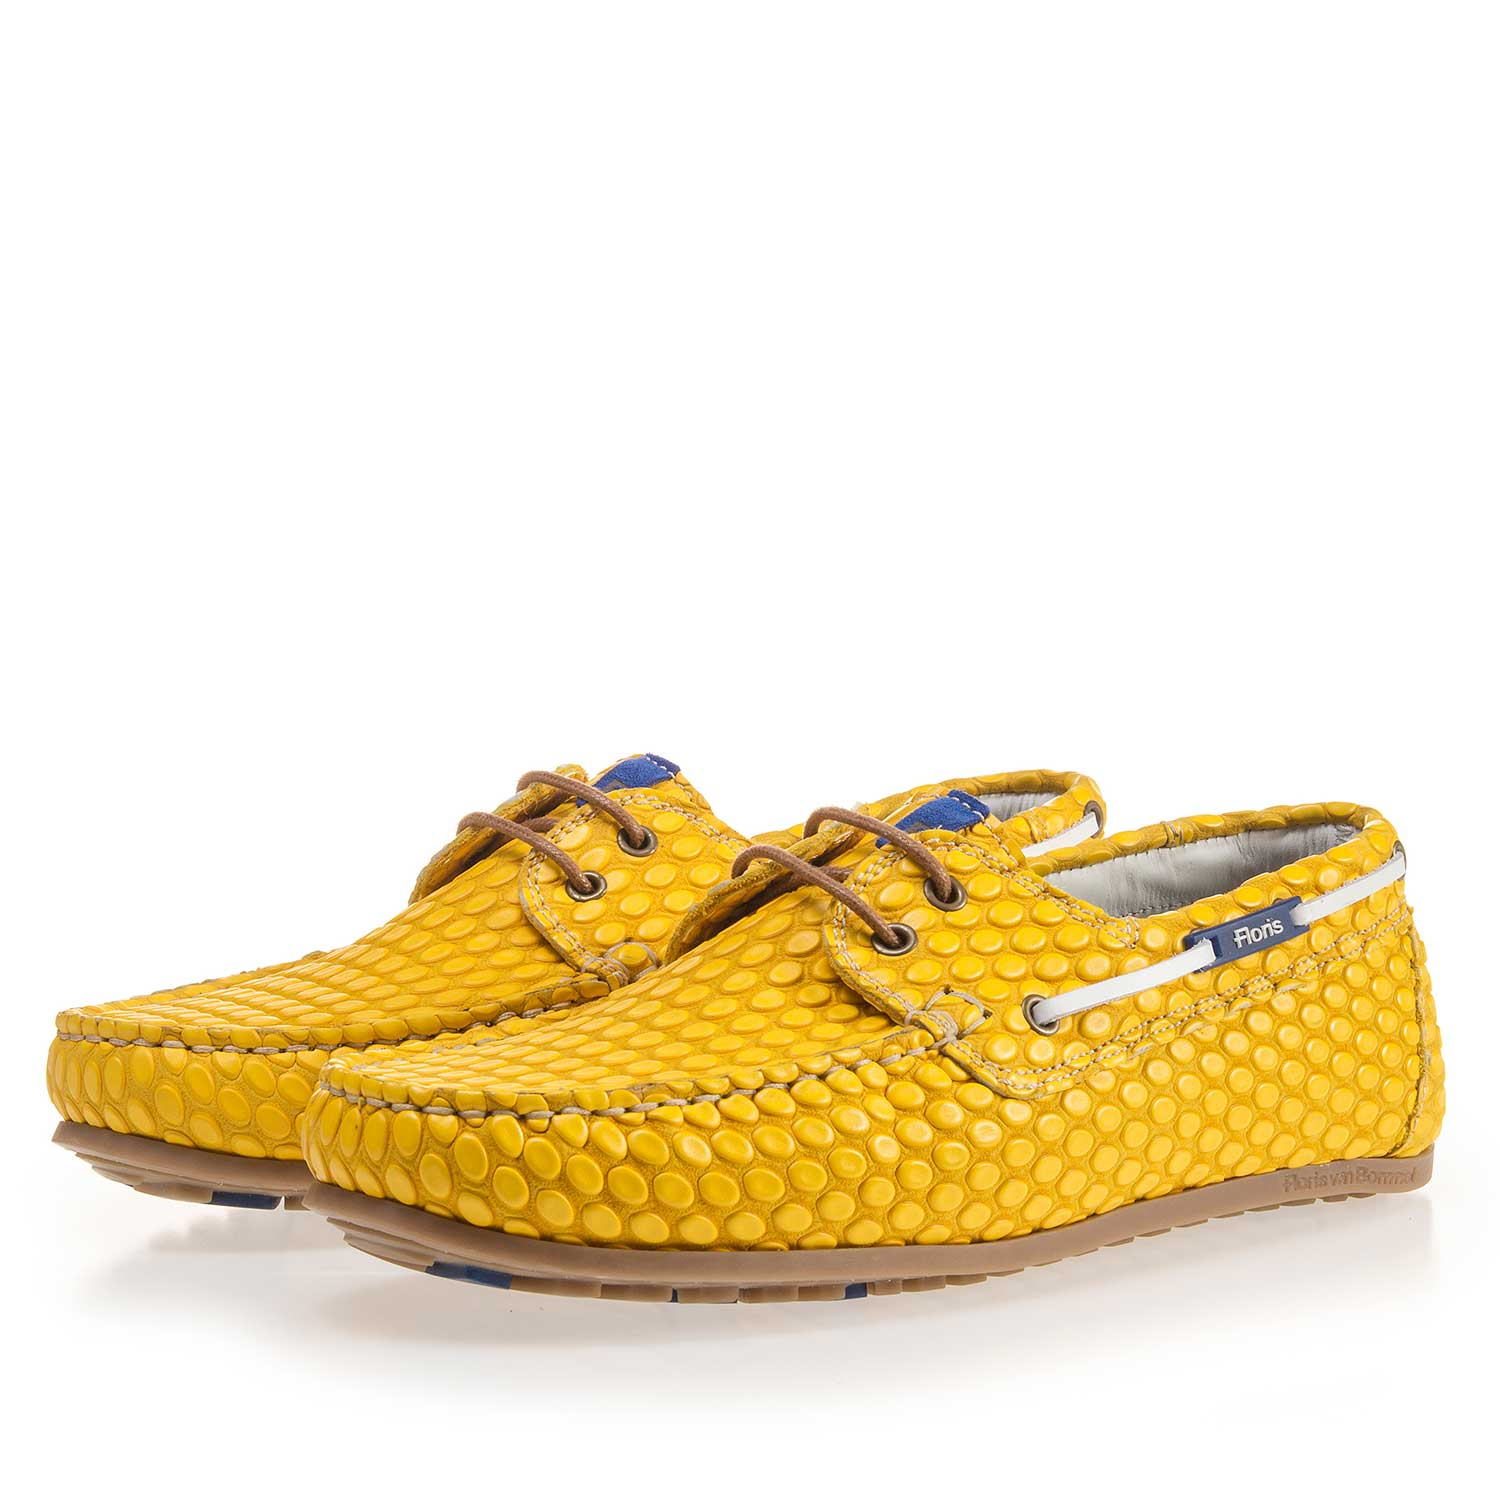 15055/01 - Yellow, printed boat shoe made of leather